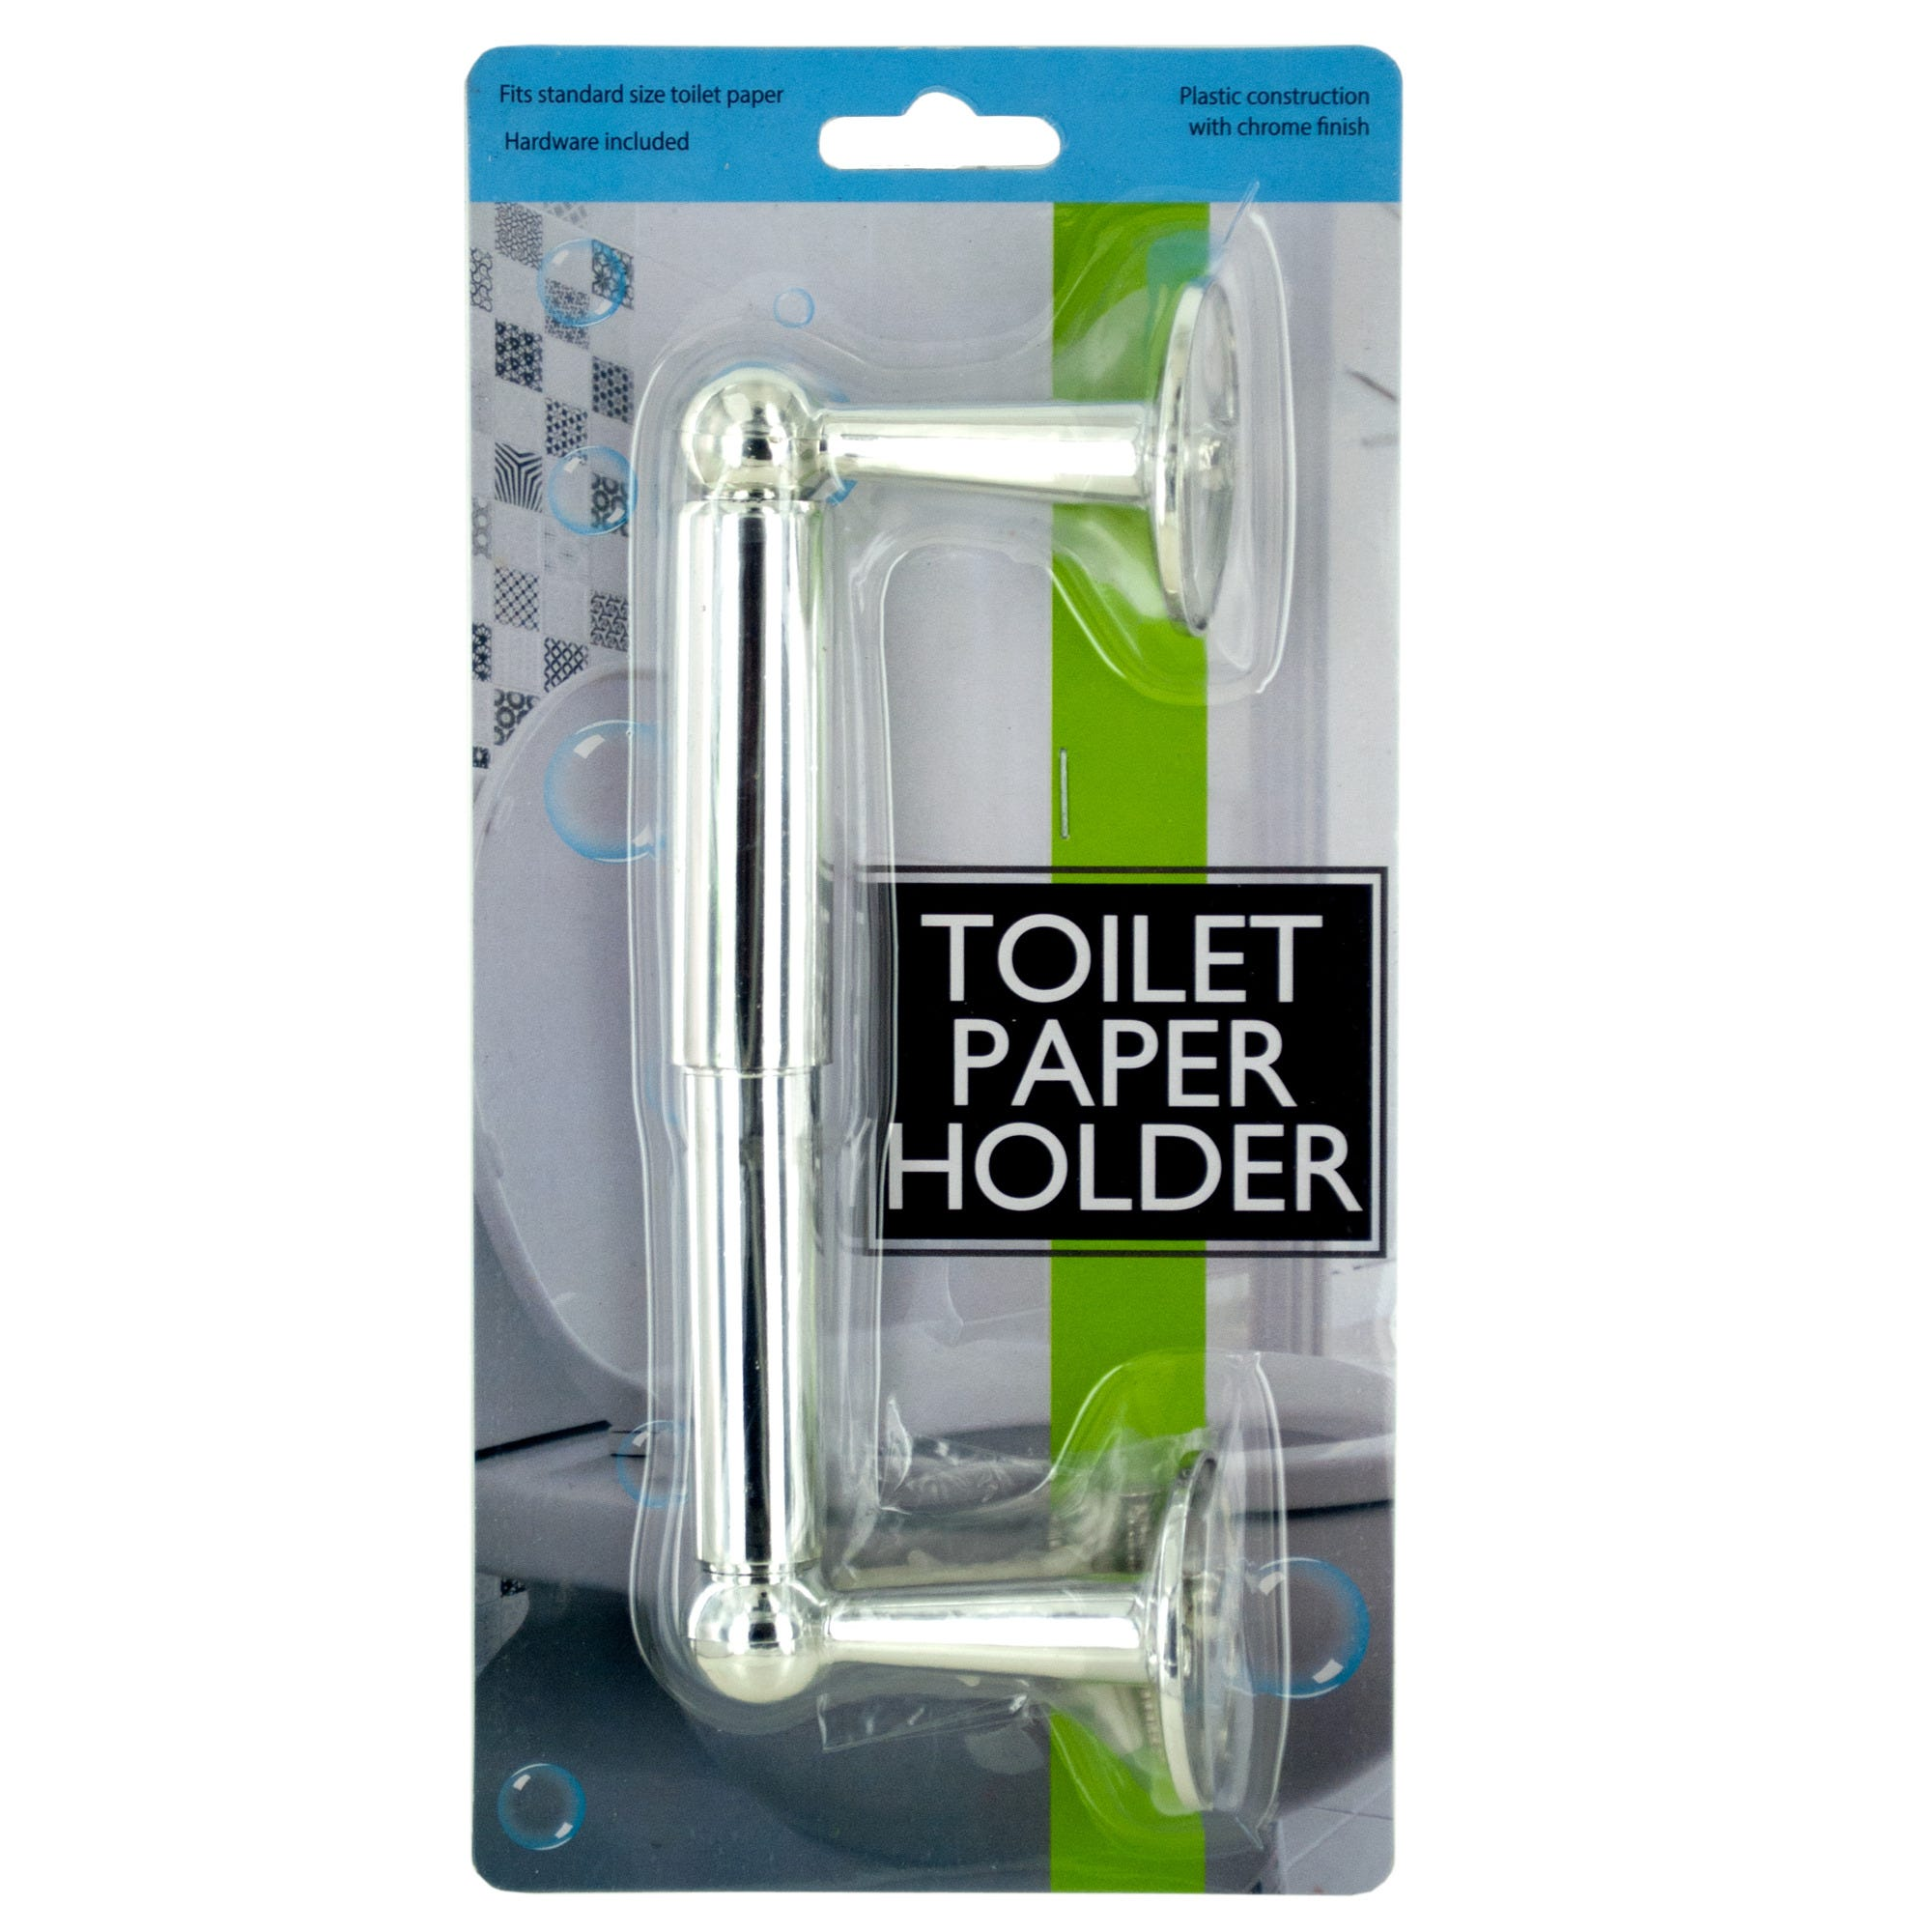 Wholesale toilet paper now available at wholesale central - Scented toilet paper roll holder ...